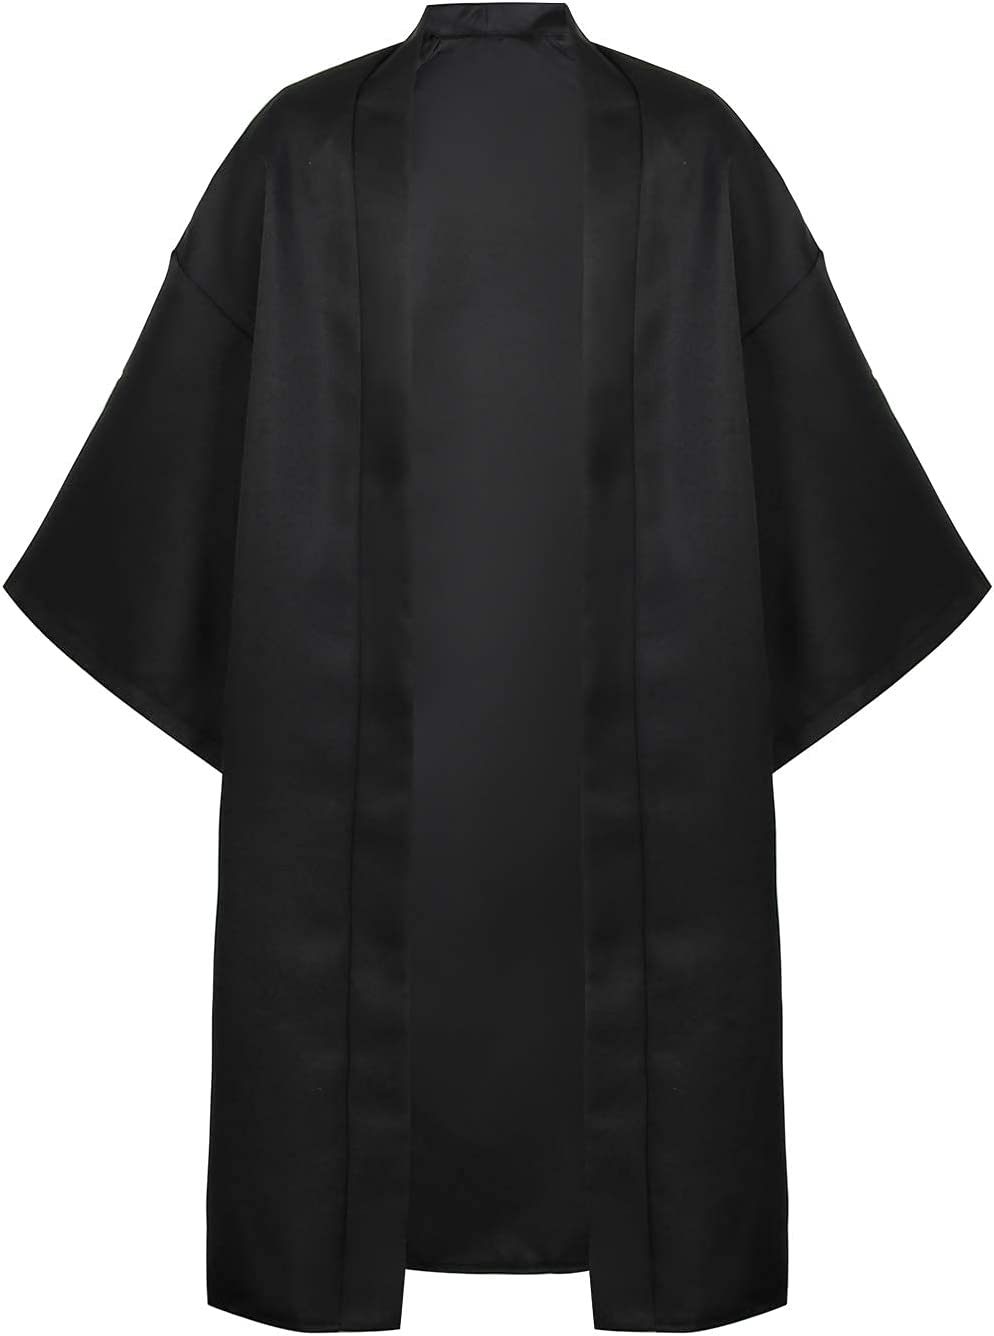 Halloween Cape Cosplay Costume Anime Play Cloak Kimono Special price for price a limited time Role